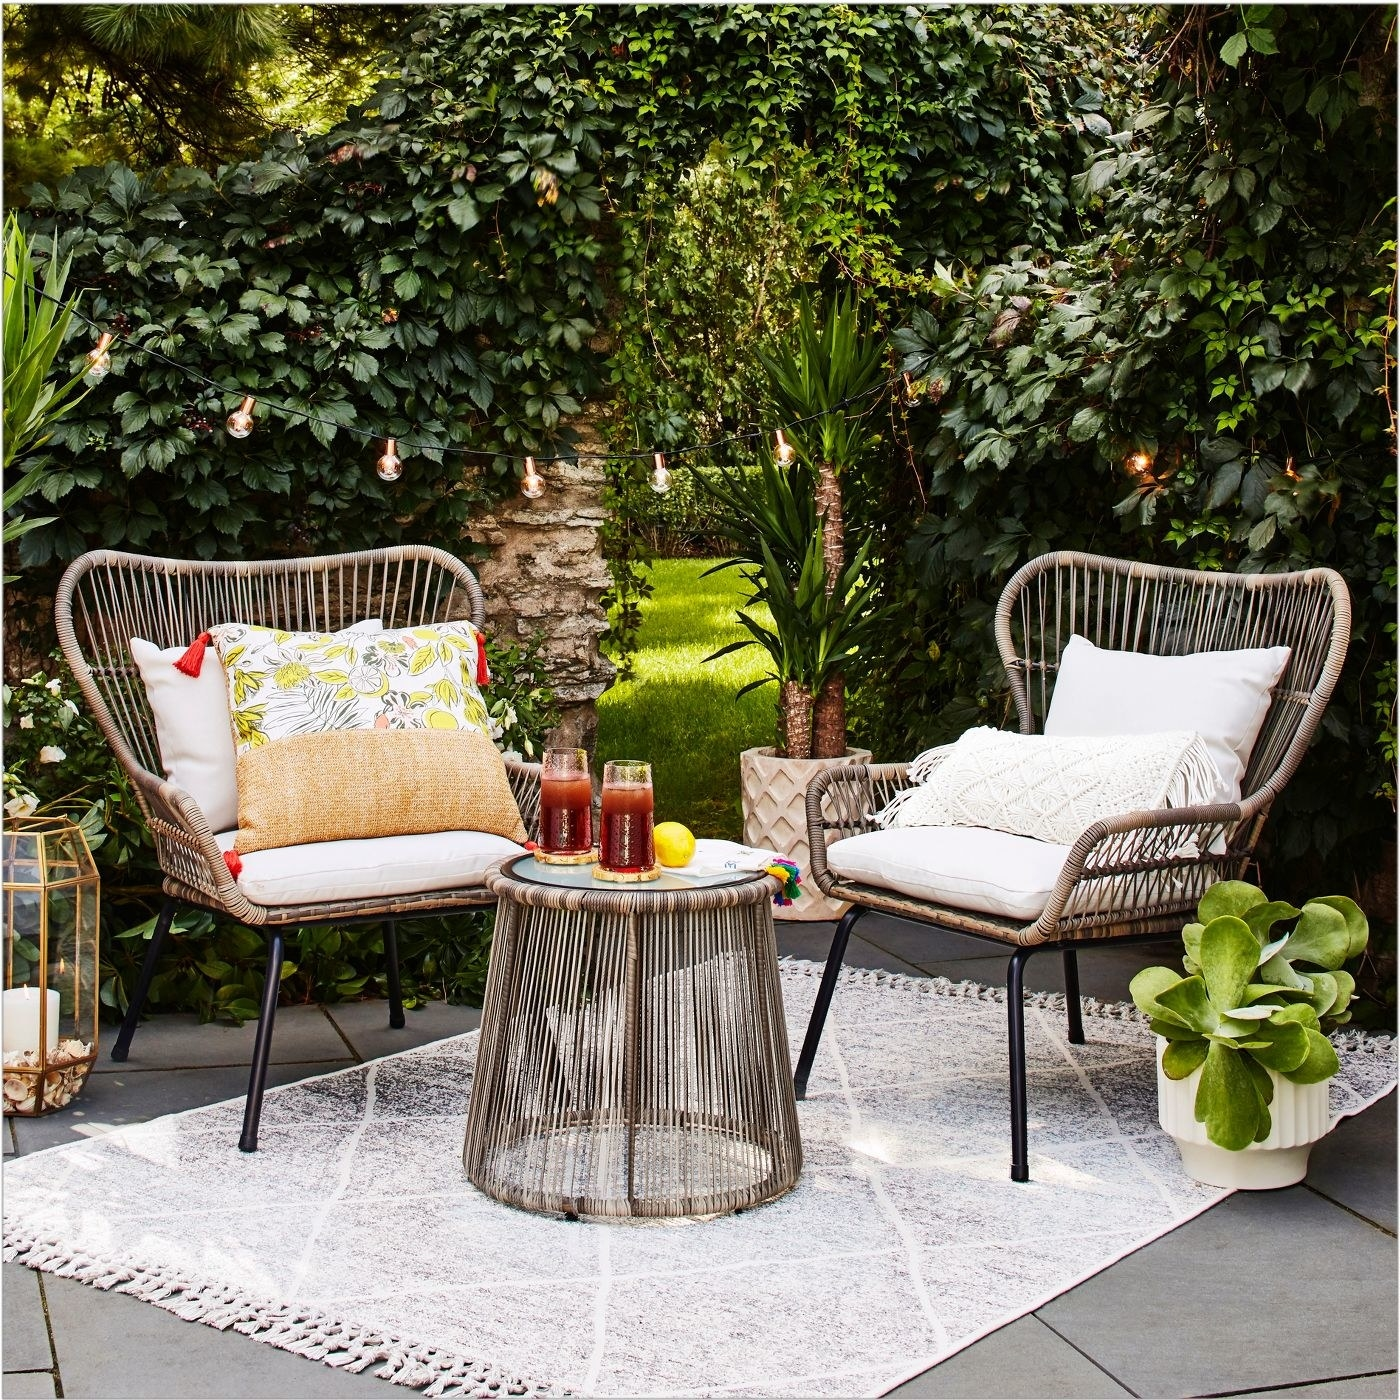 three-piece wicker patio set including two chairs with white cushions and a a round coffee table